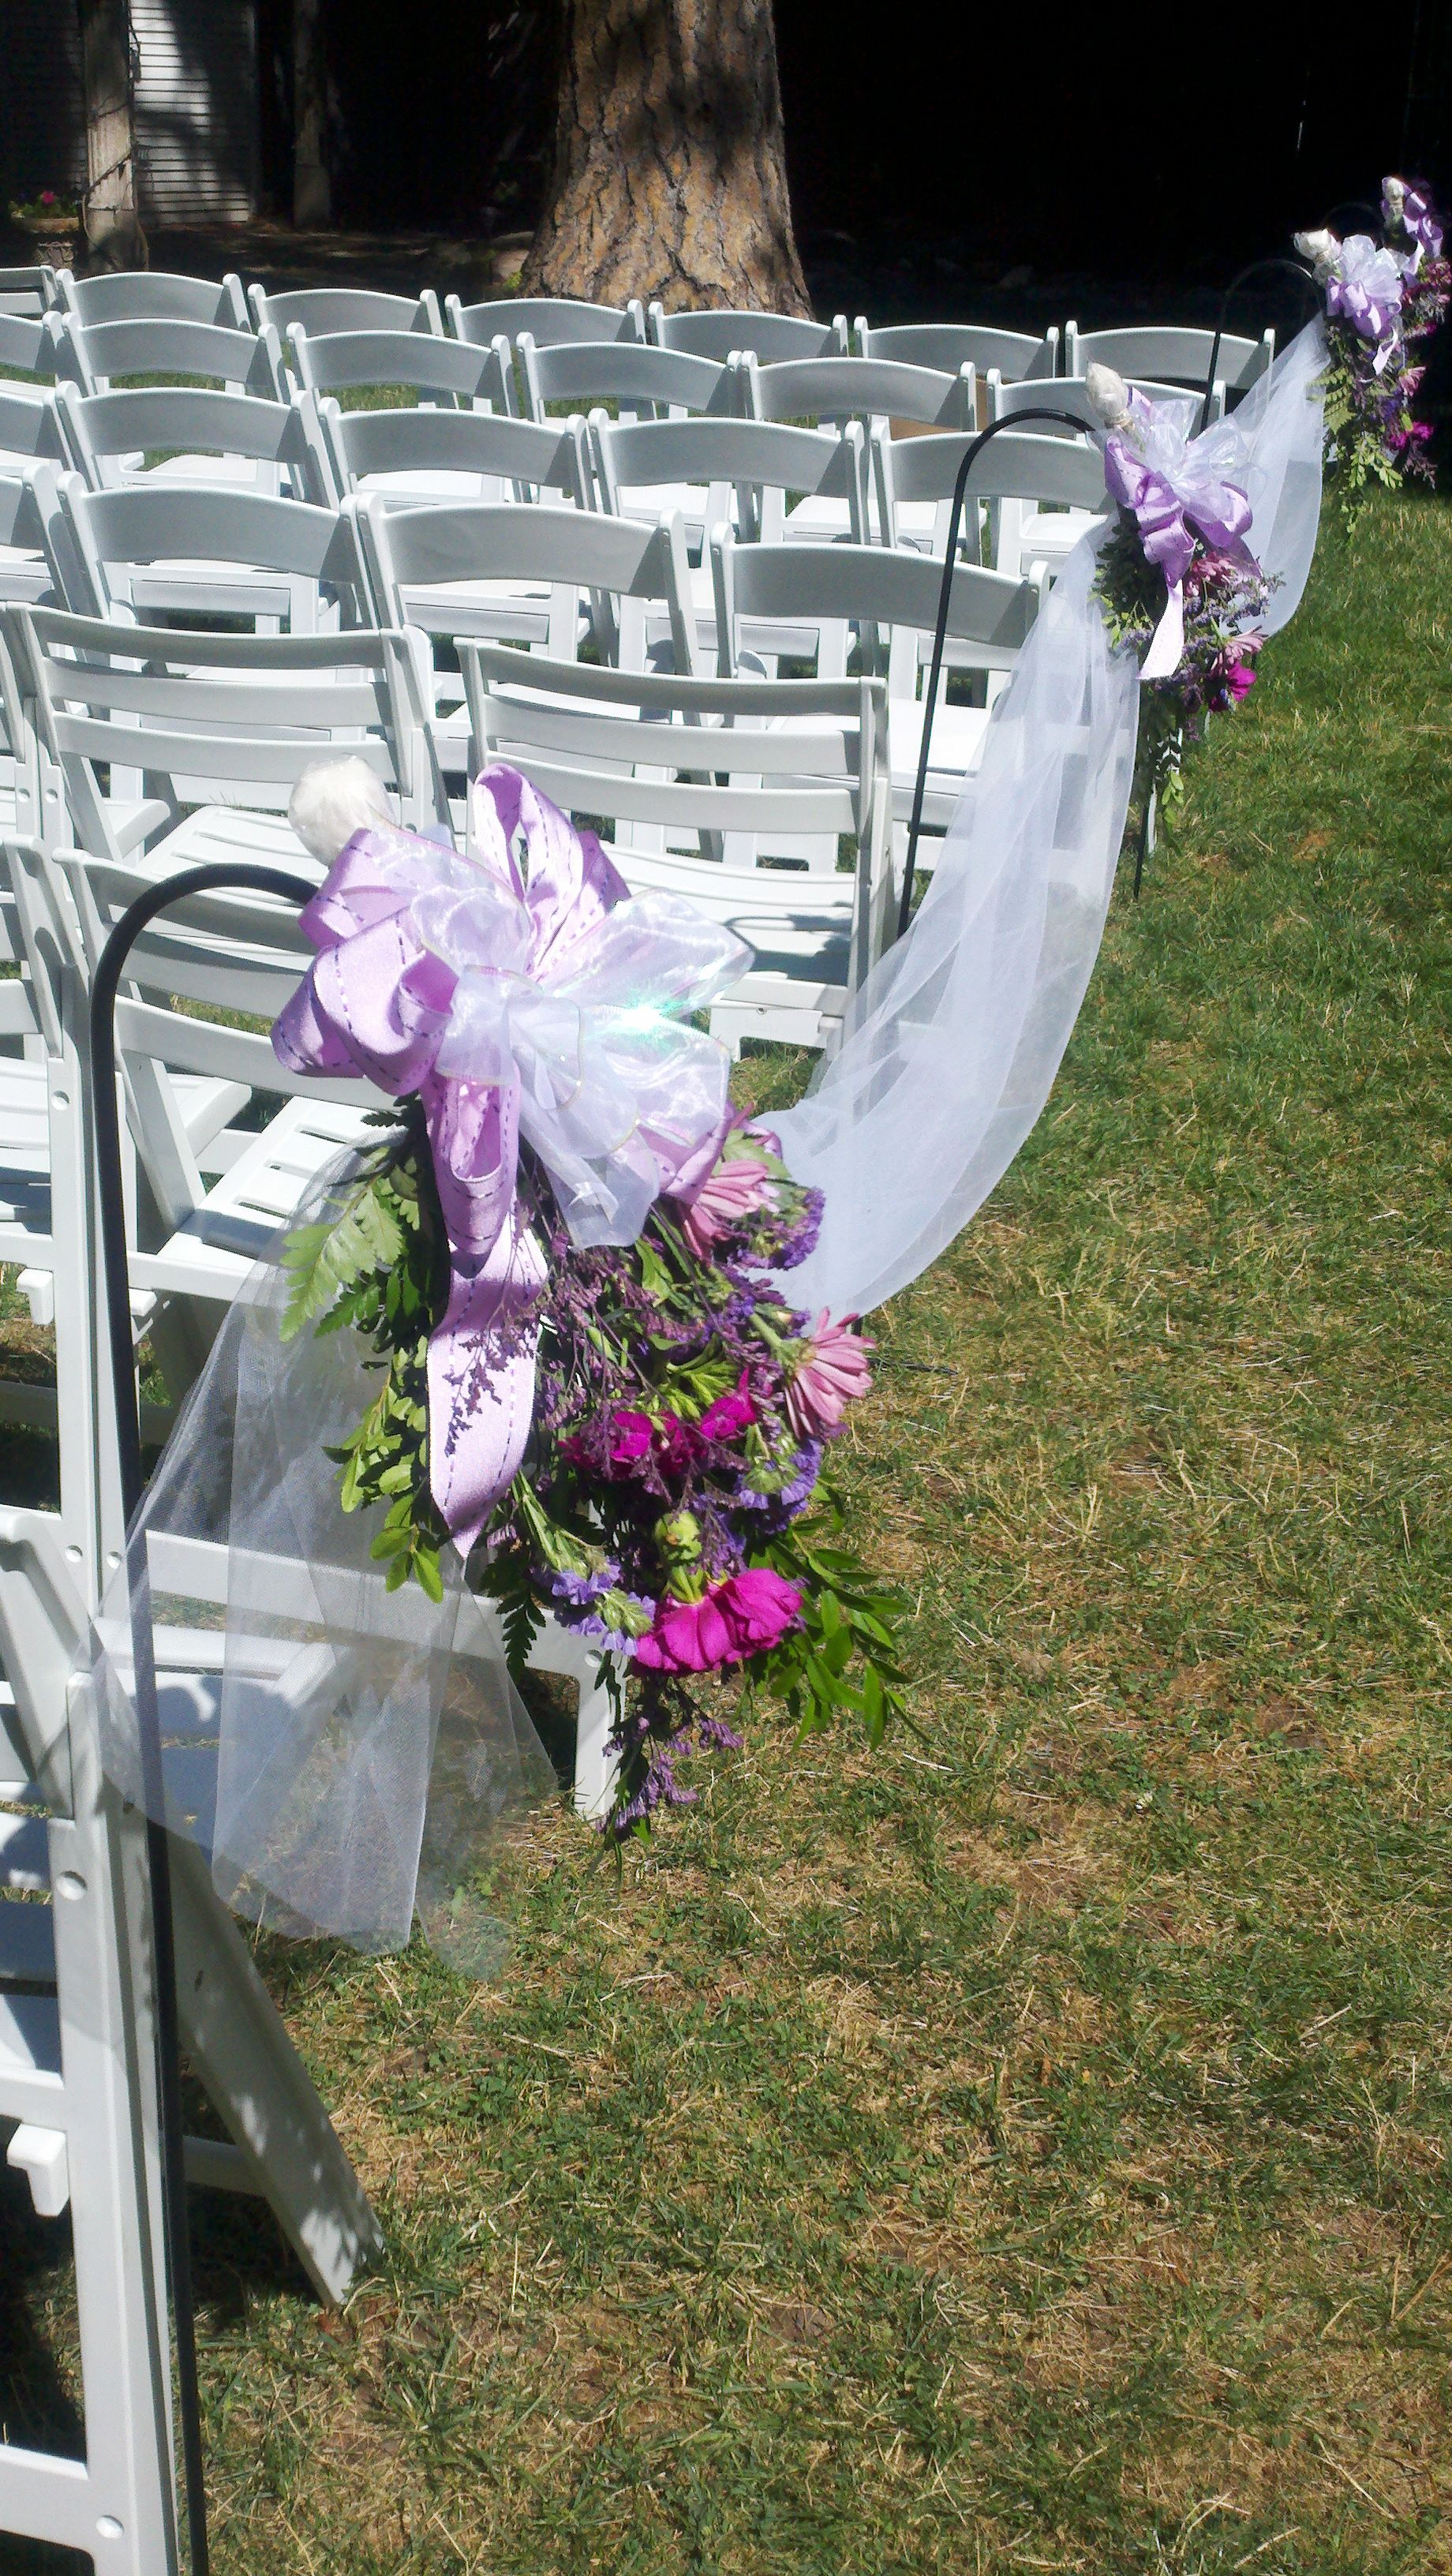 Wedding Flowers On Shepherds Hooks : Shepherd hooks with flowers and fabric to line the aisle